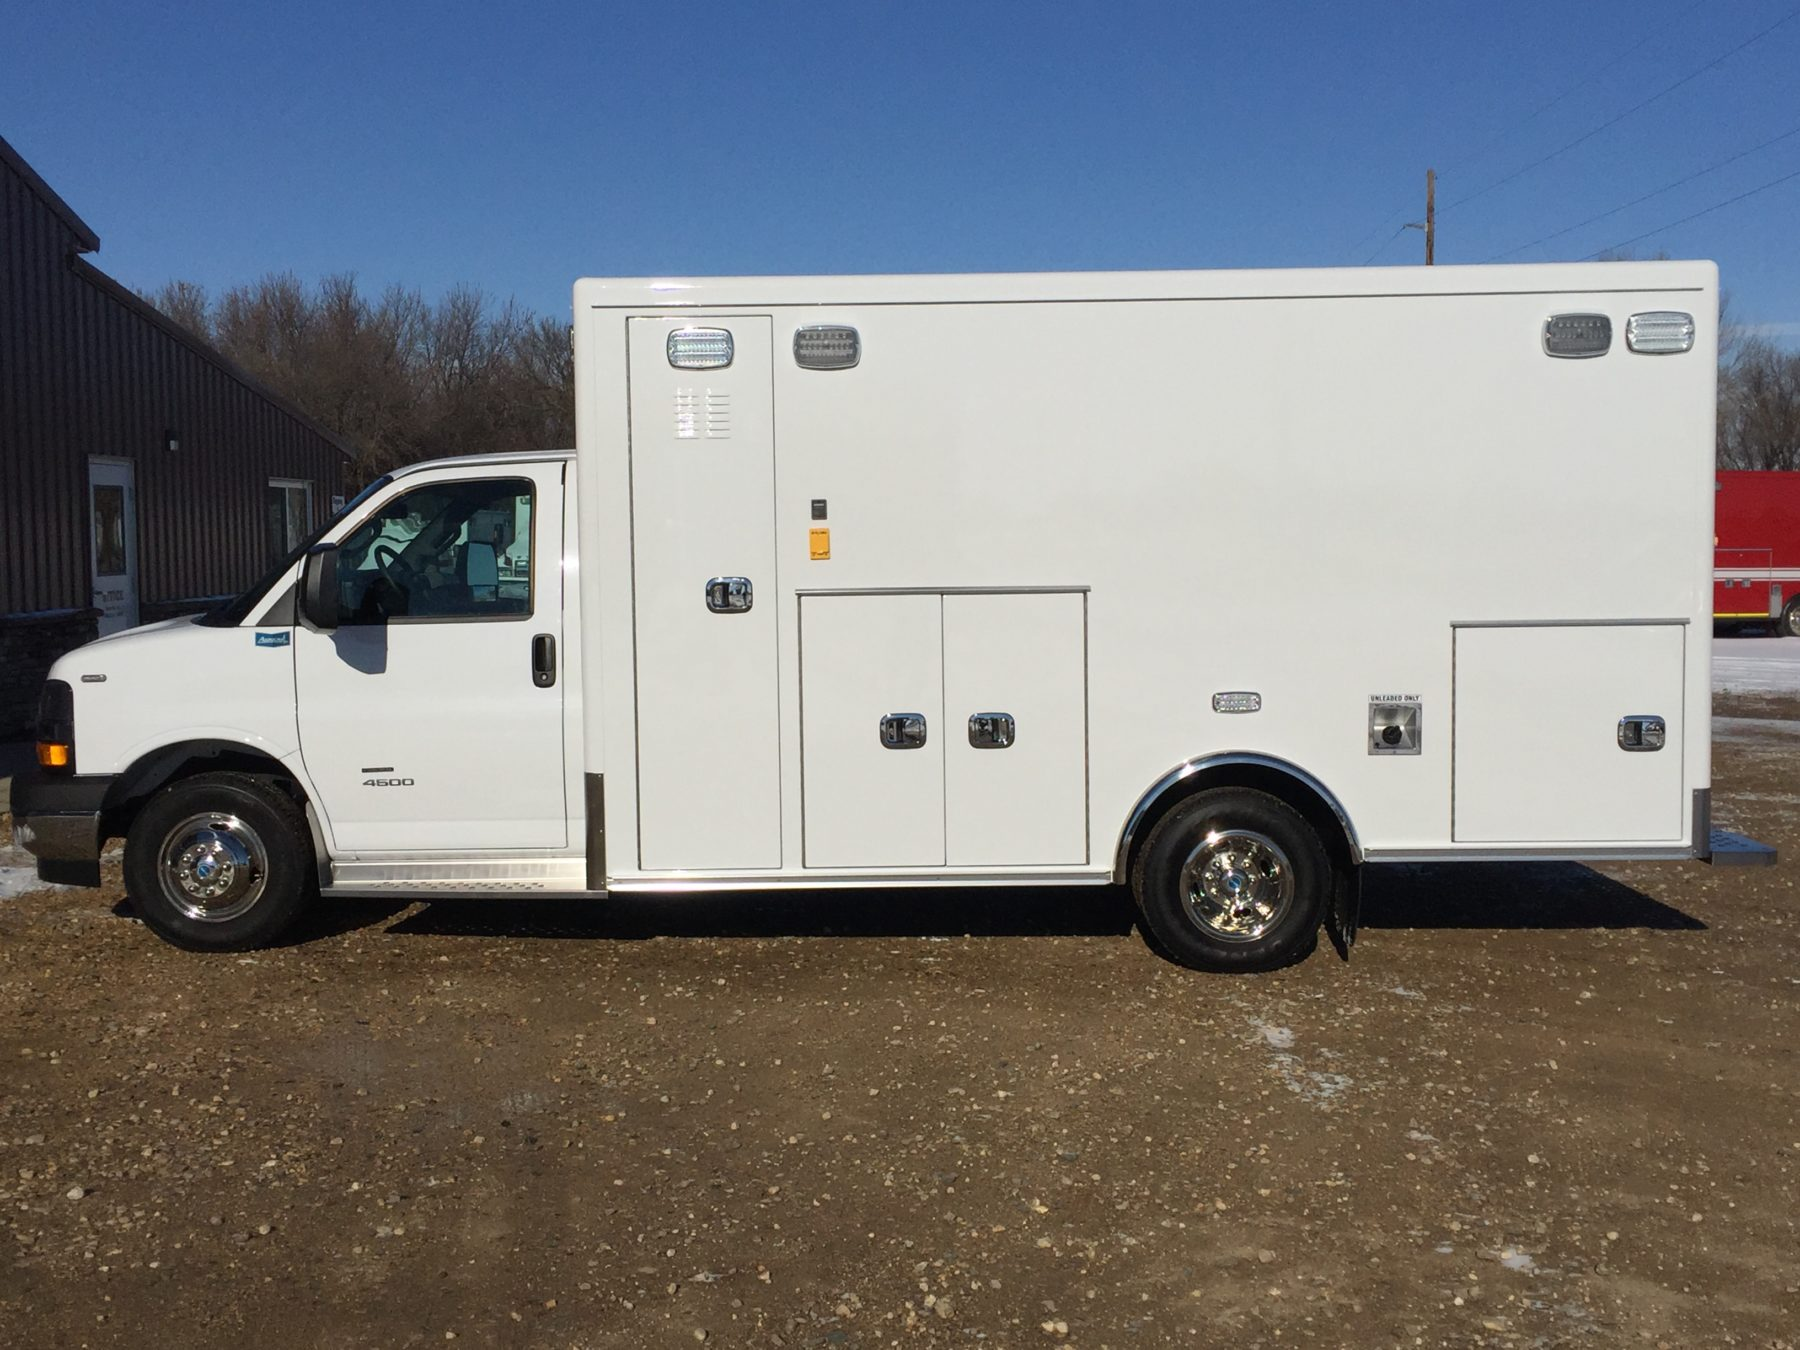 2018 Chevrolet G4500 Type 3 Ambulance For Sale – Picture 6